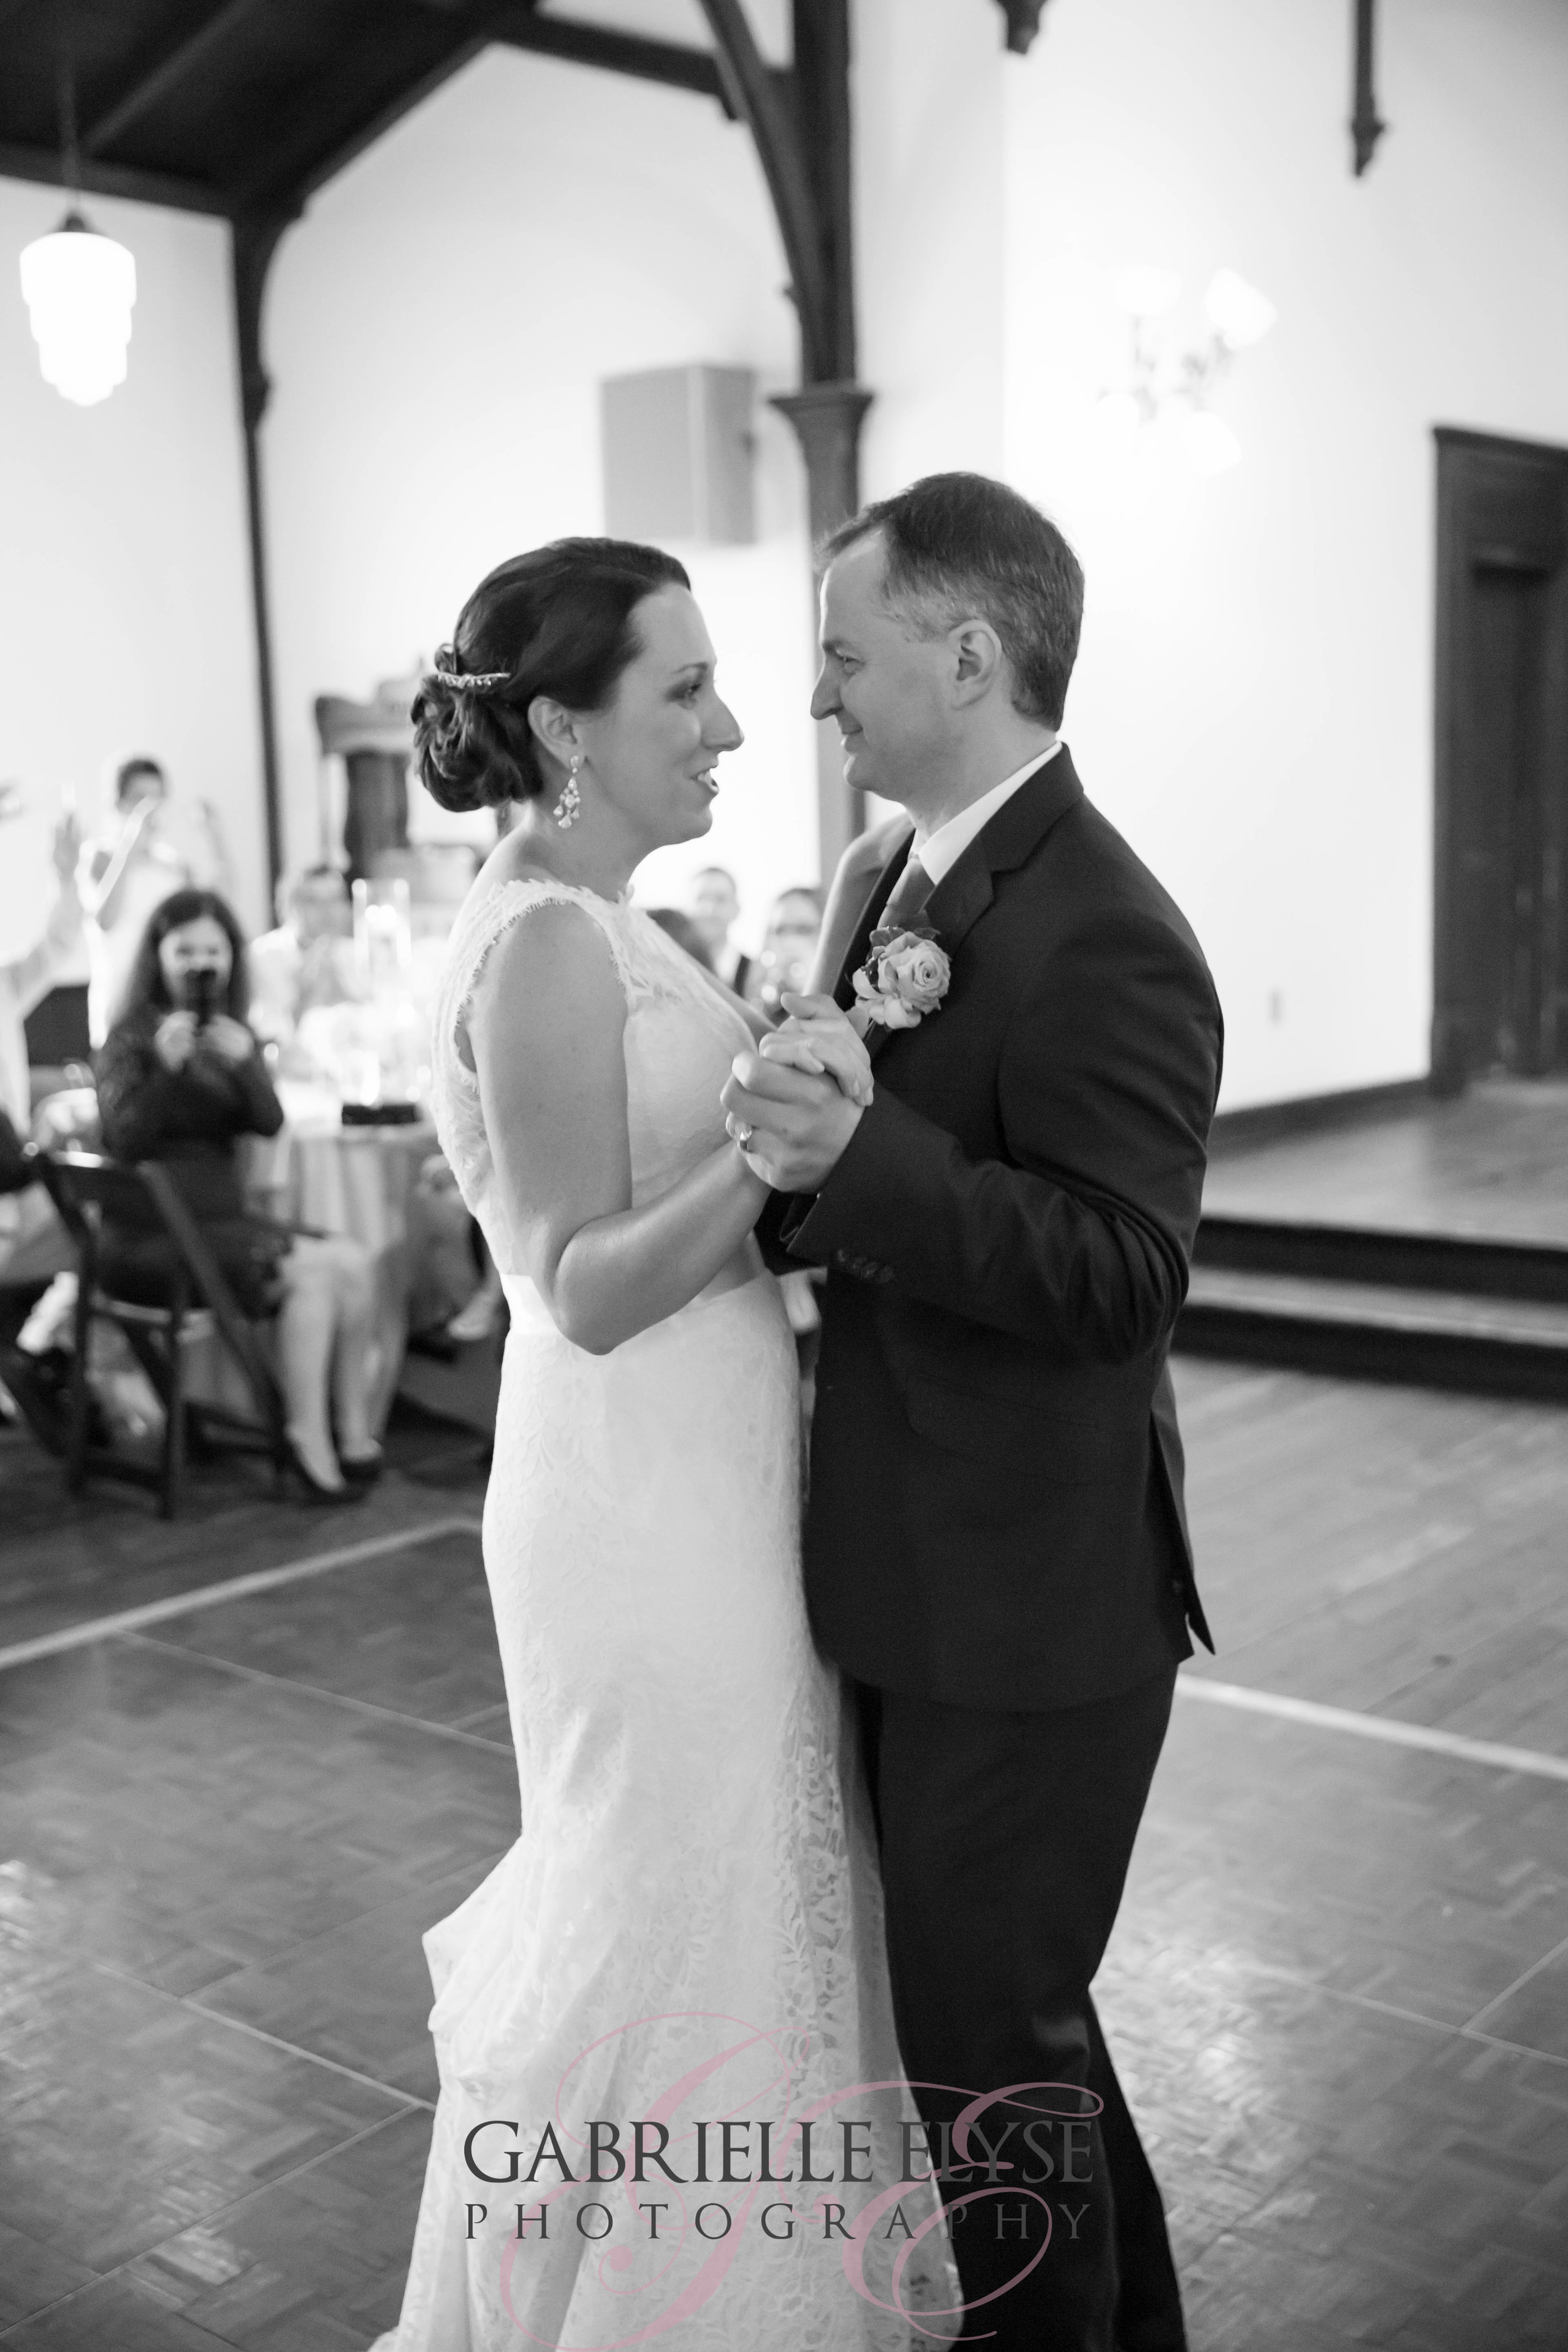 Dancing during their first dance and looking absolutely stunning